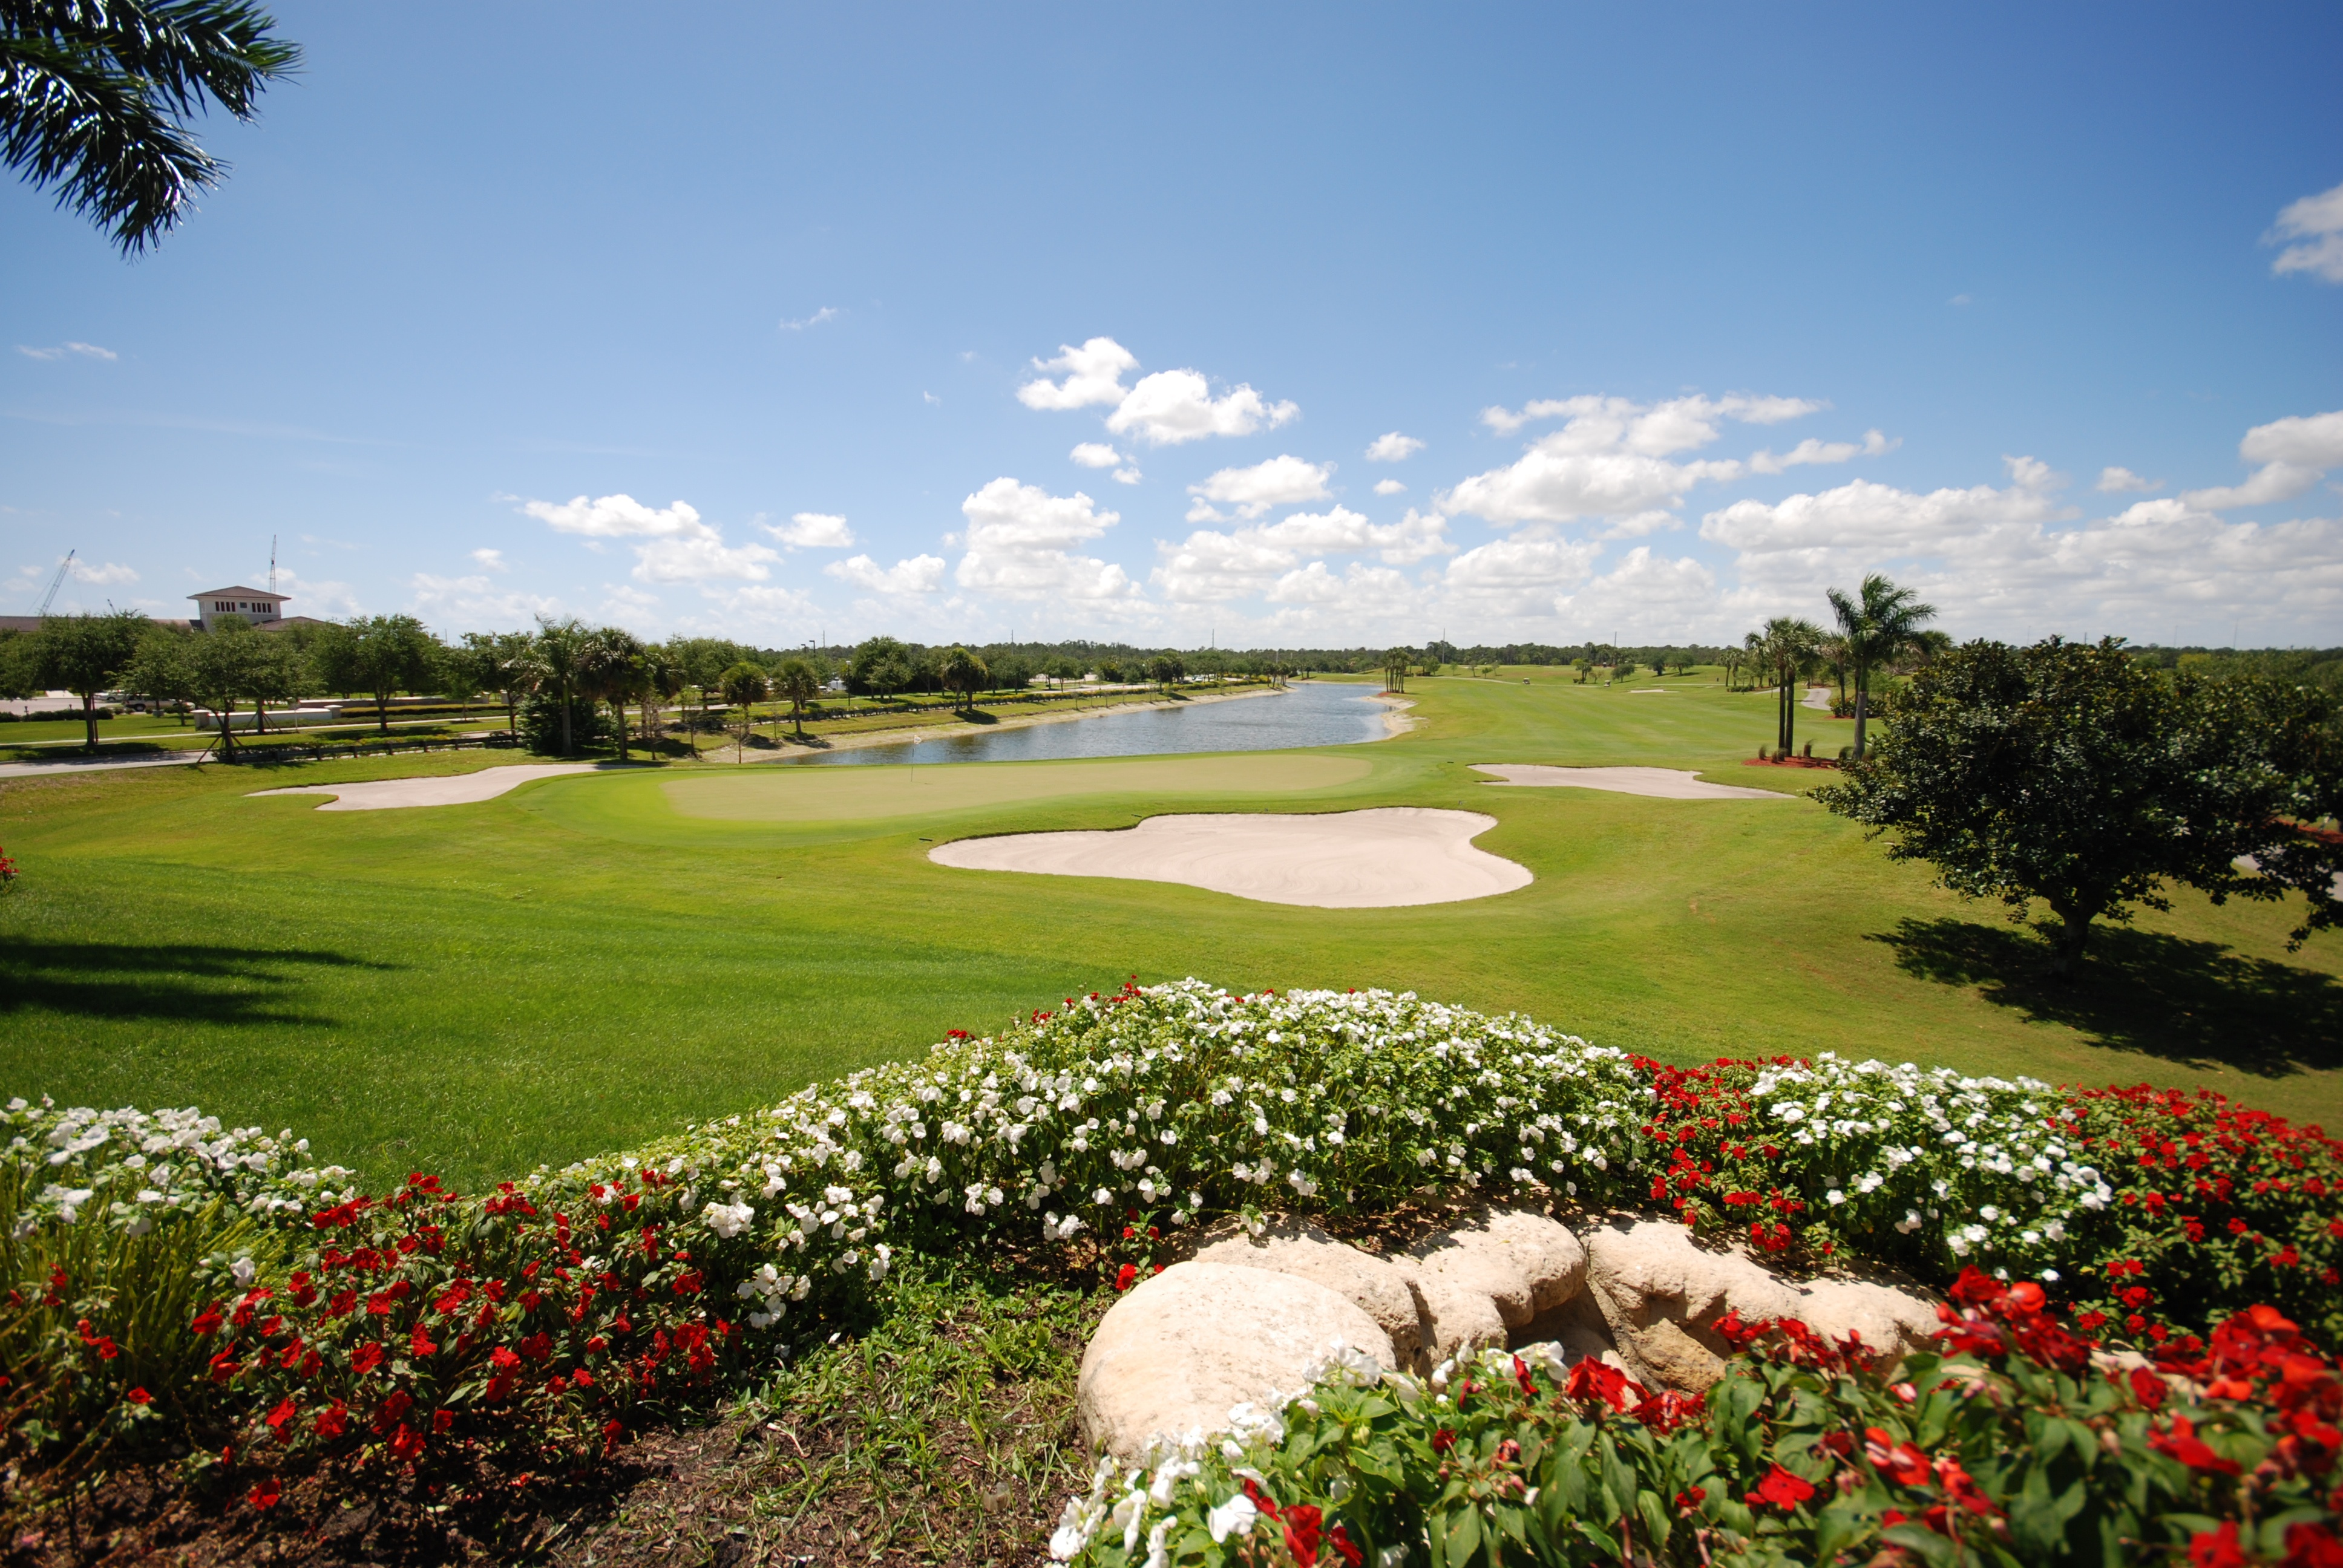 Properties for Sale in the Loxahatchee Club